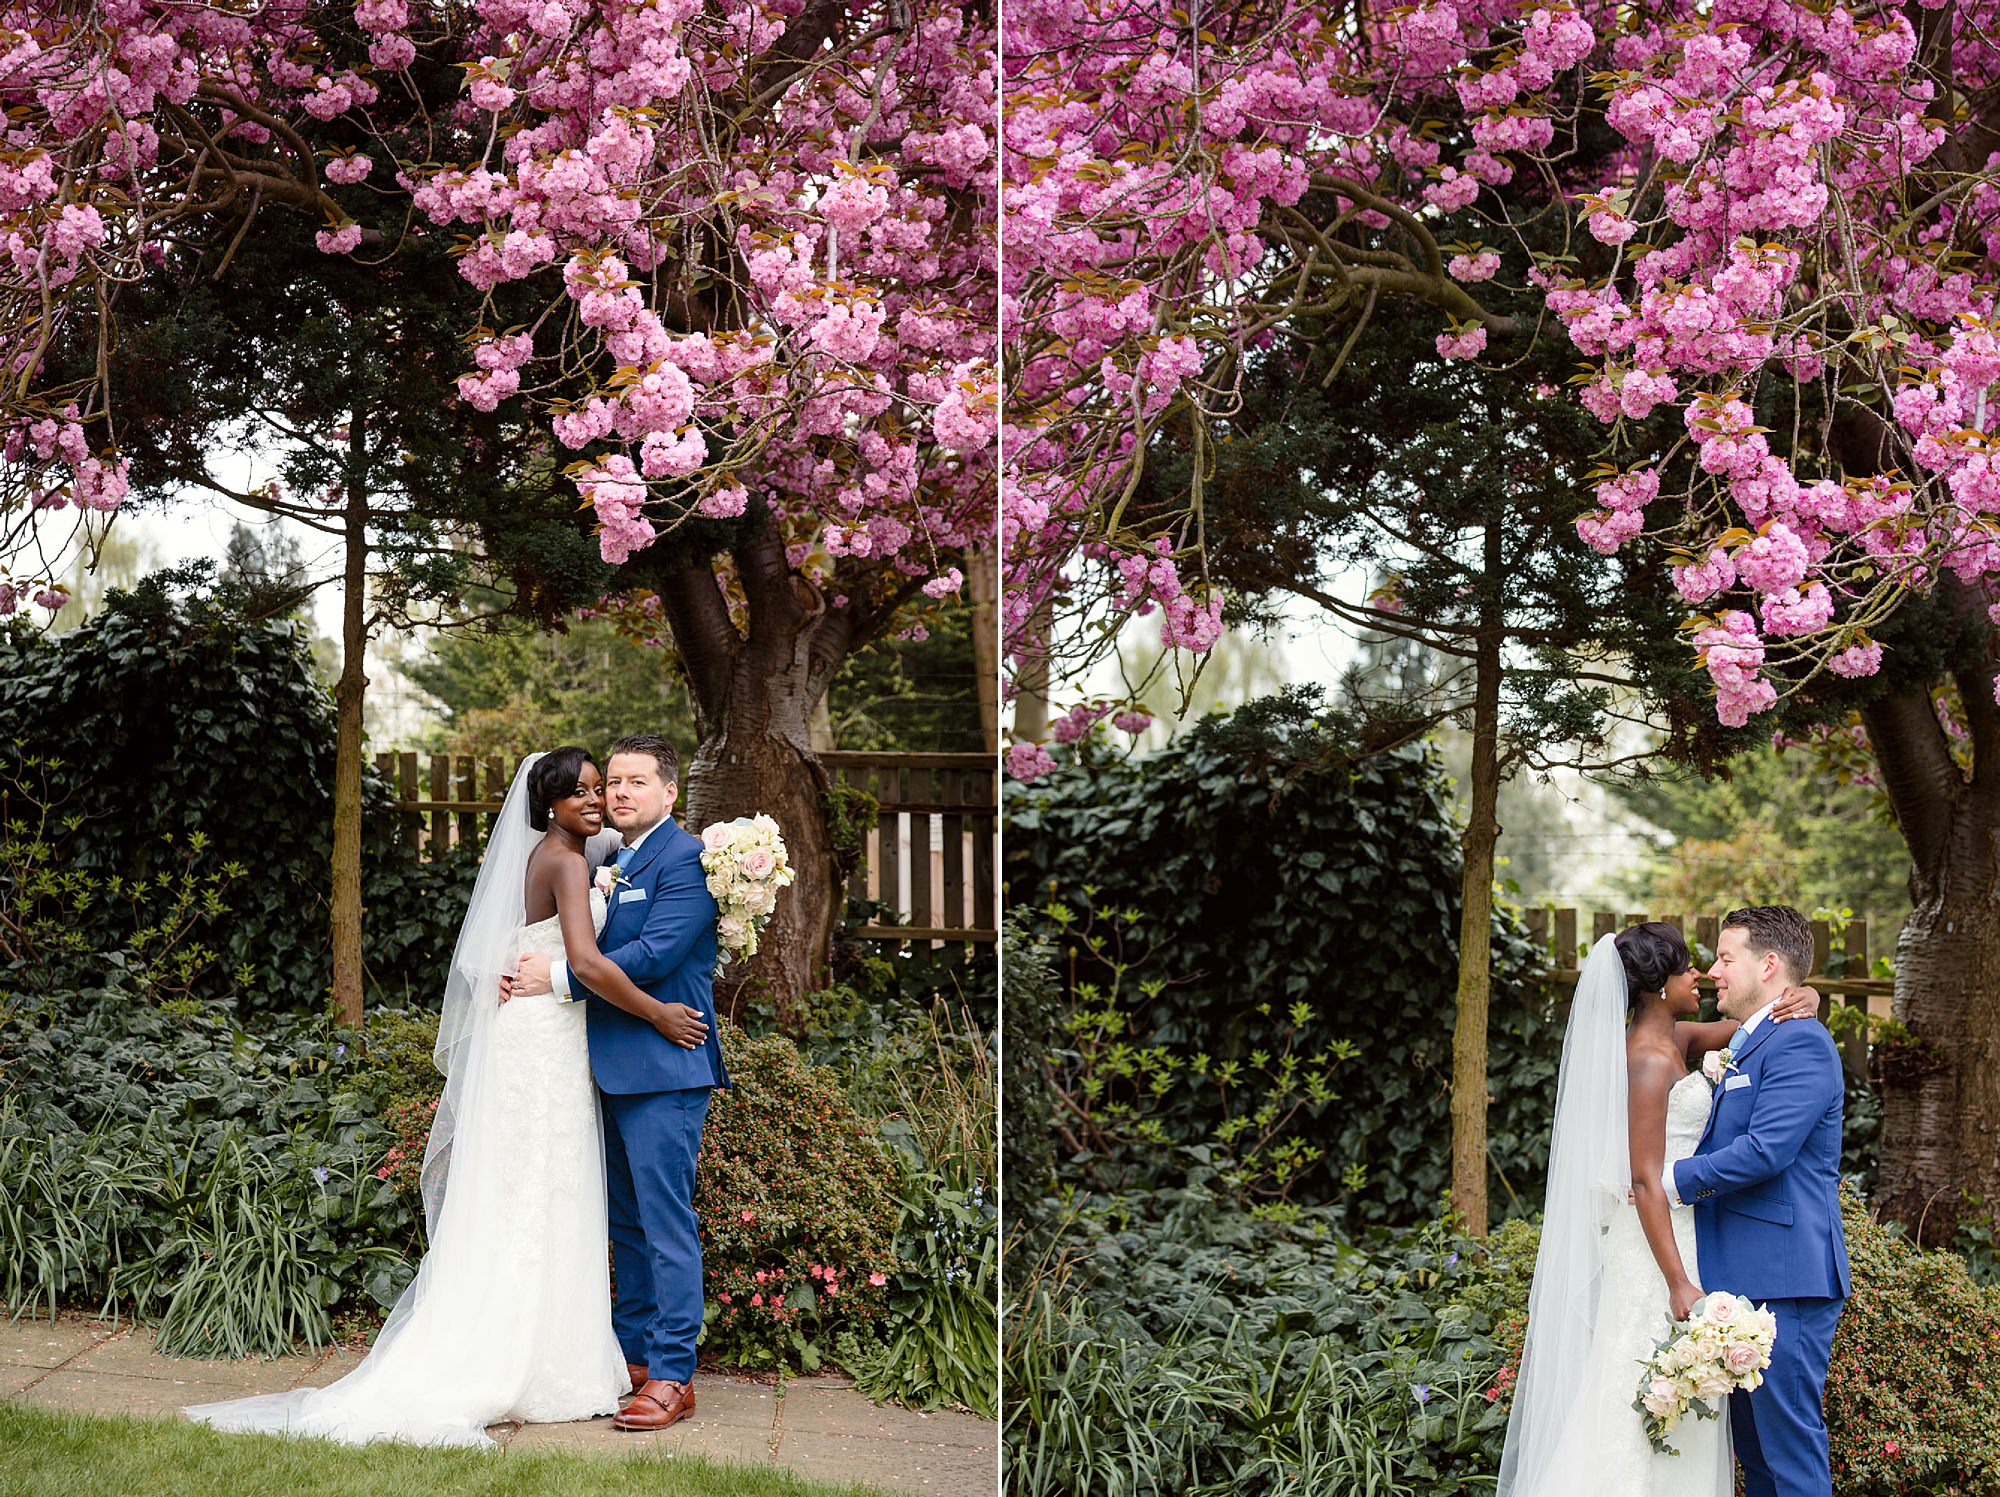 Bank of England Sports Centre wedding portrait of bride and groom by pink blossom tree